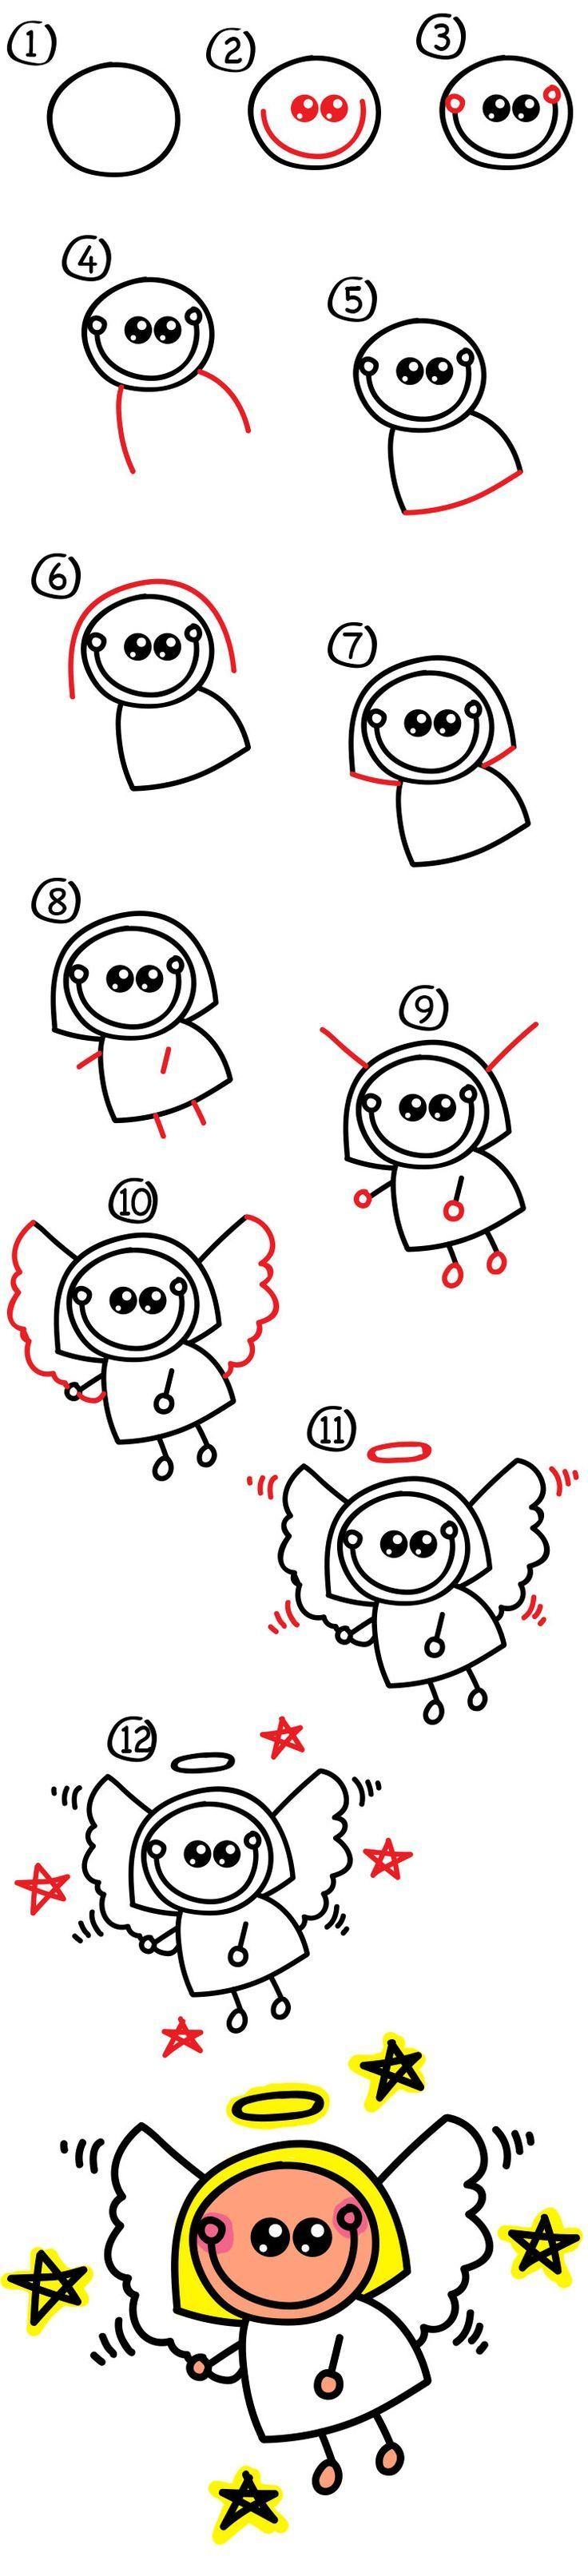 How To Draw An Angel Art For Kids Hub Art for kids